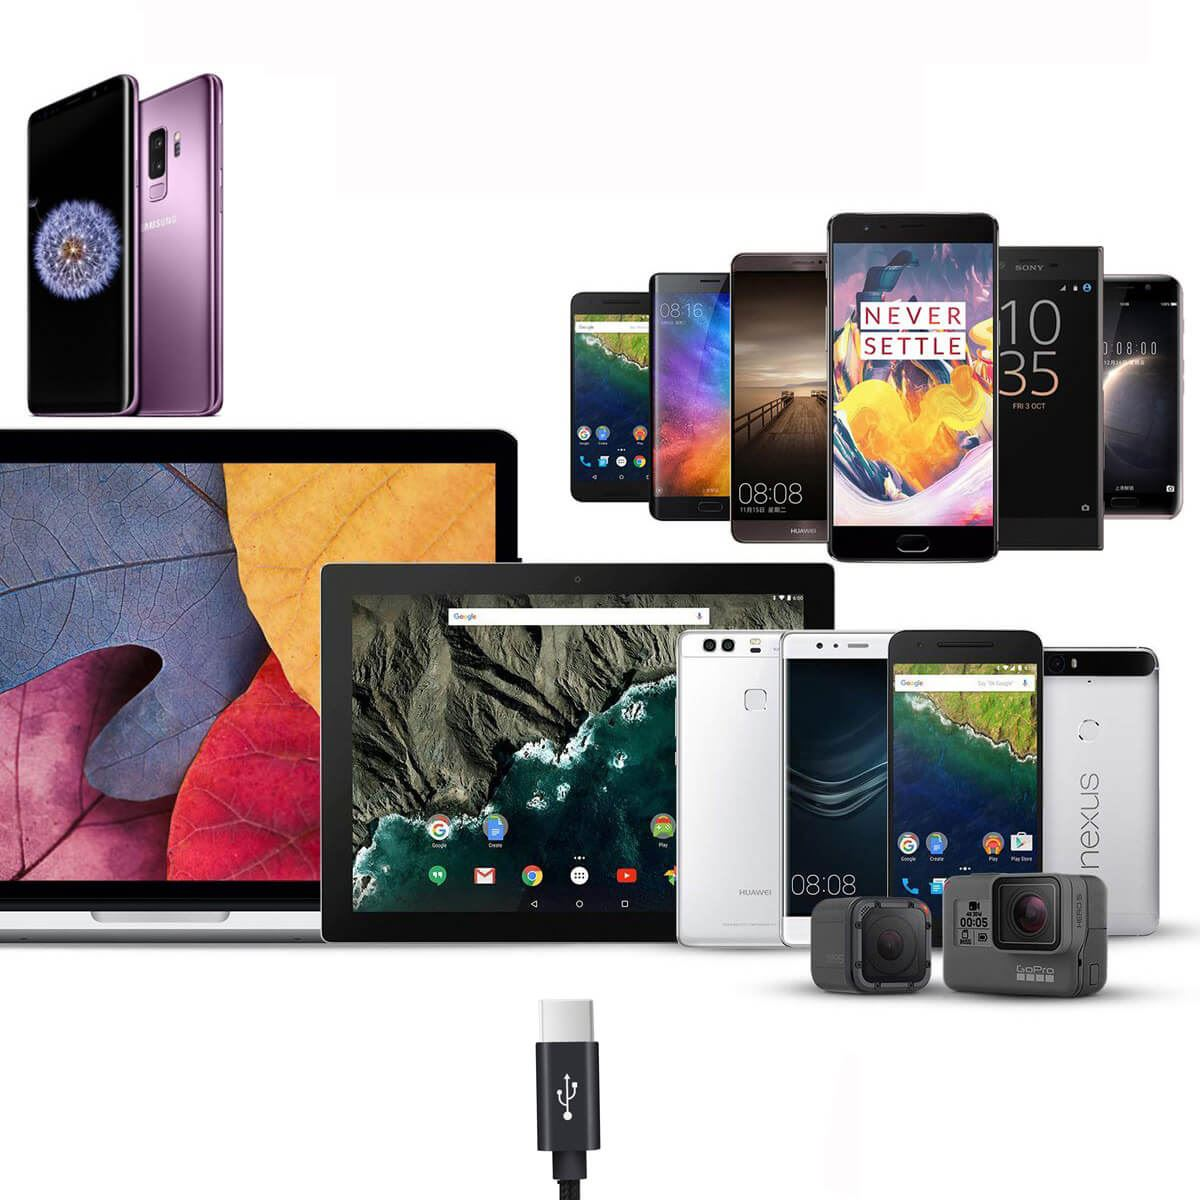 Type-C-USB-C-Sync-Fast-Charger-Charging-Cable-Samsung-Galaxy-S10-S9-S8-Plus-Lite thumbnail 13